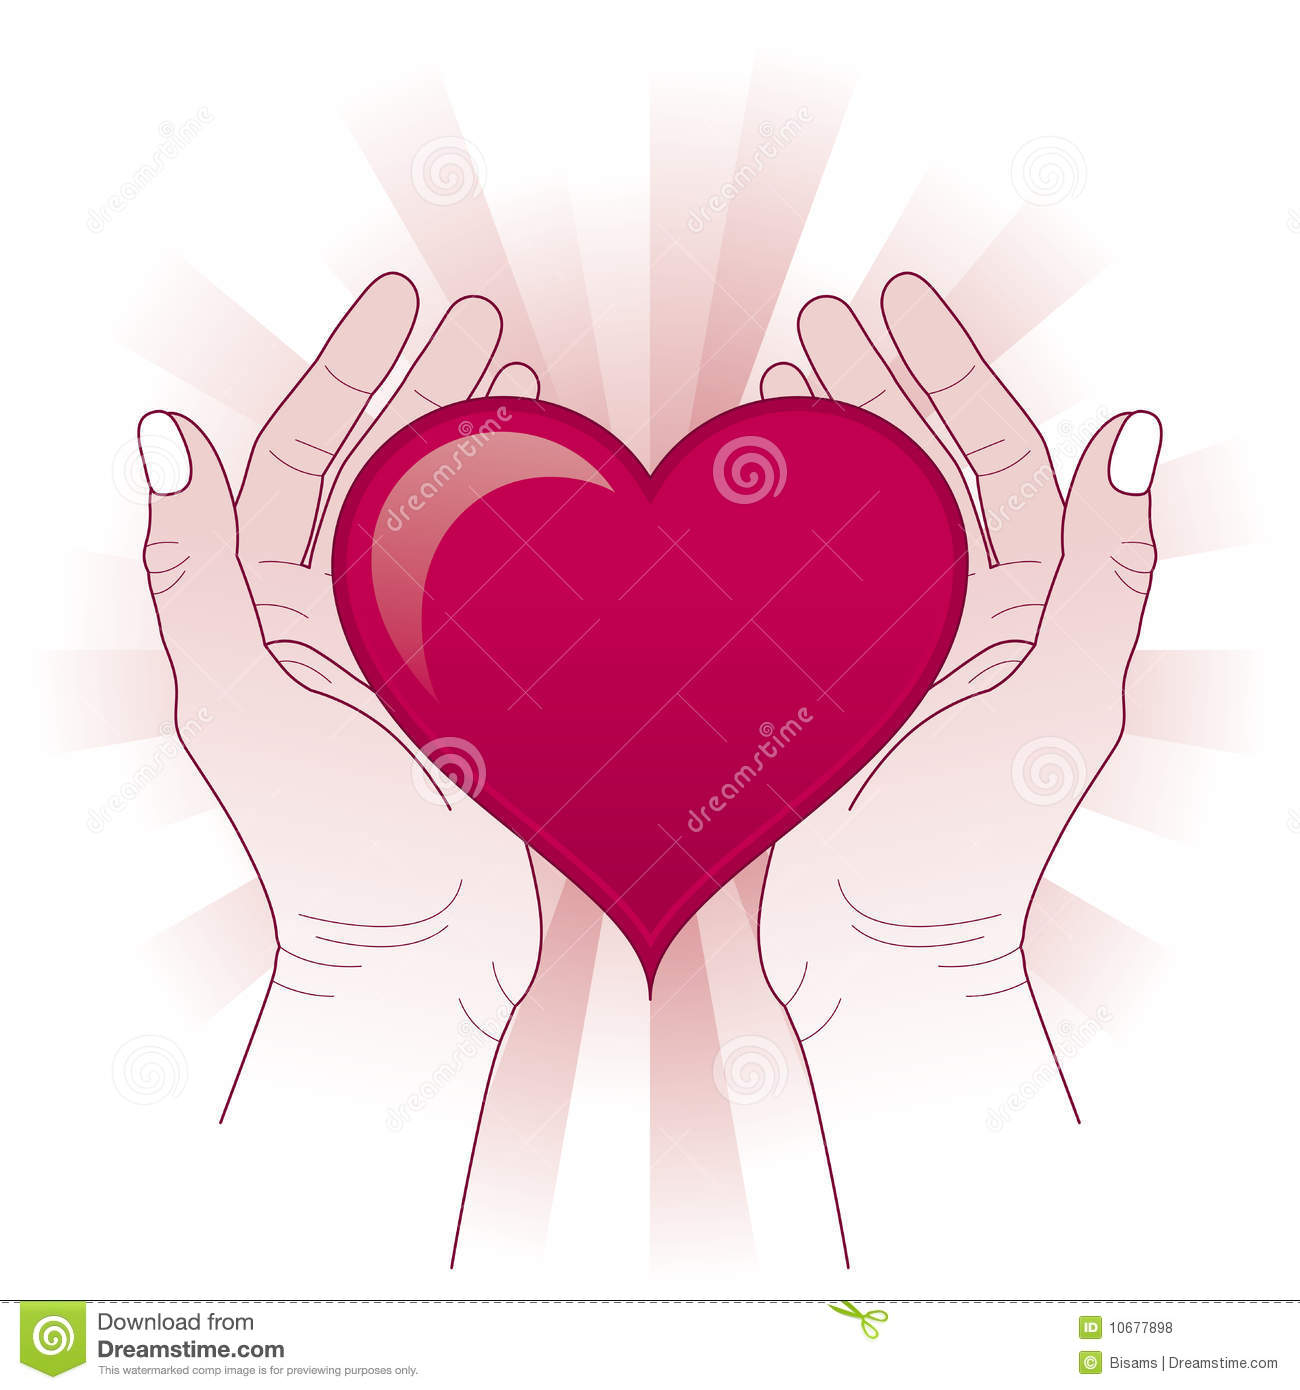 Hands Protecting The Heart  Heart In Hands Concept